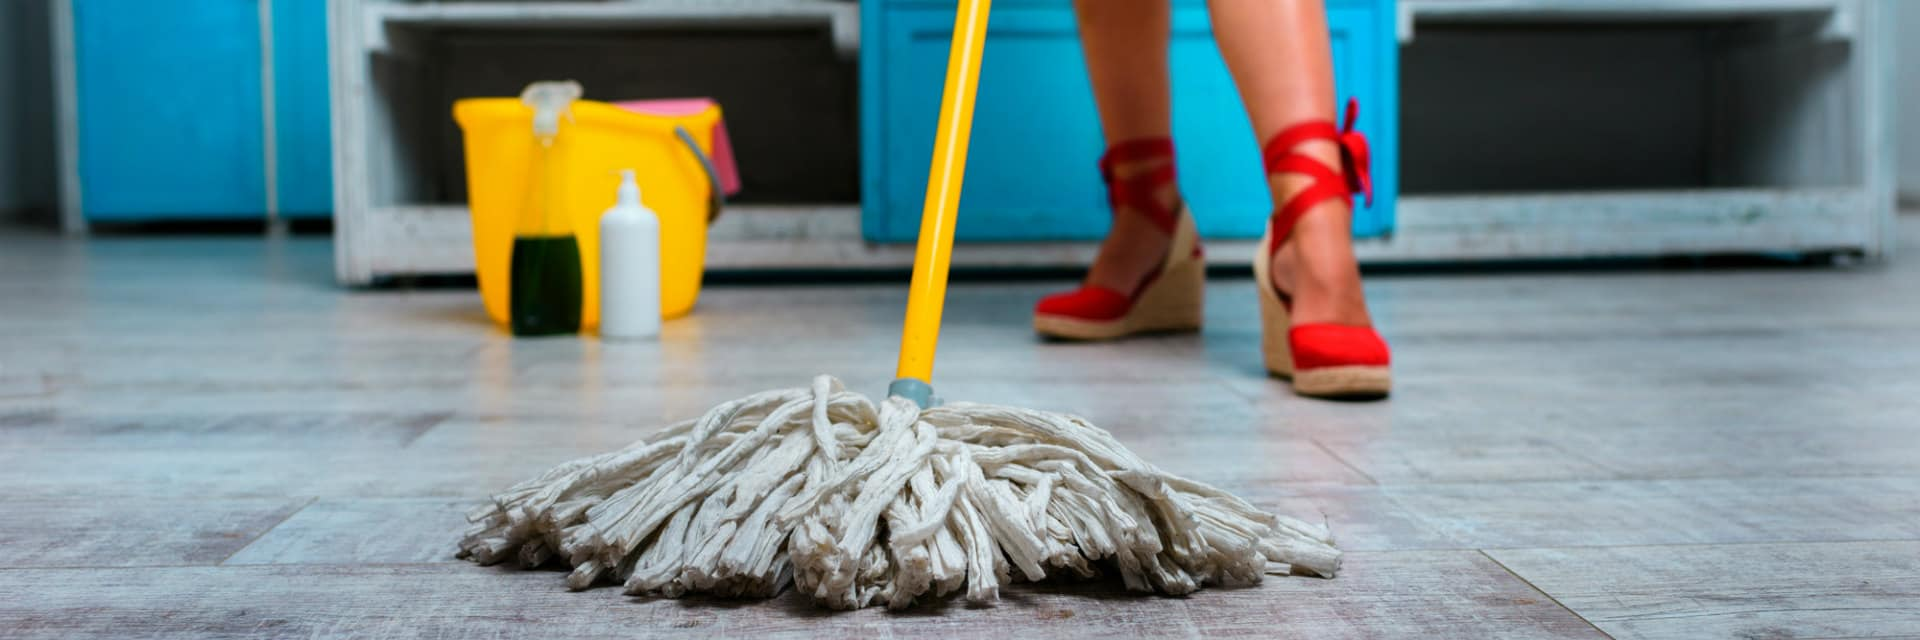 woman mopping kitchen floor in heels